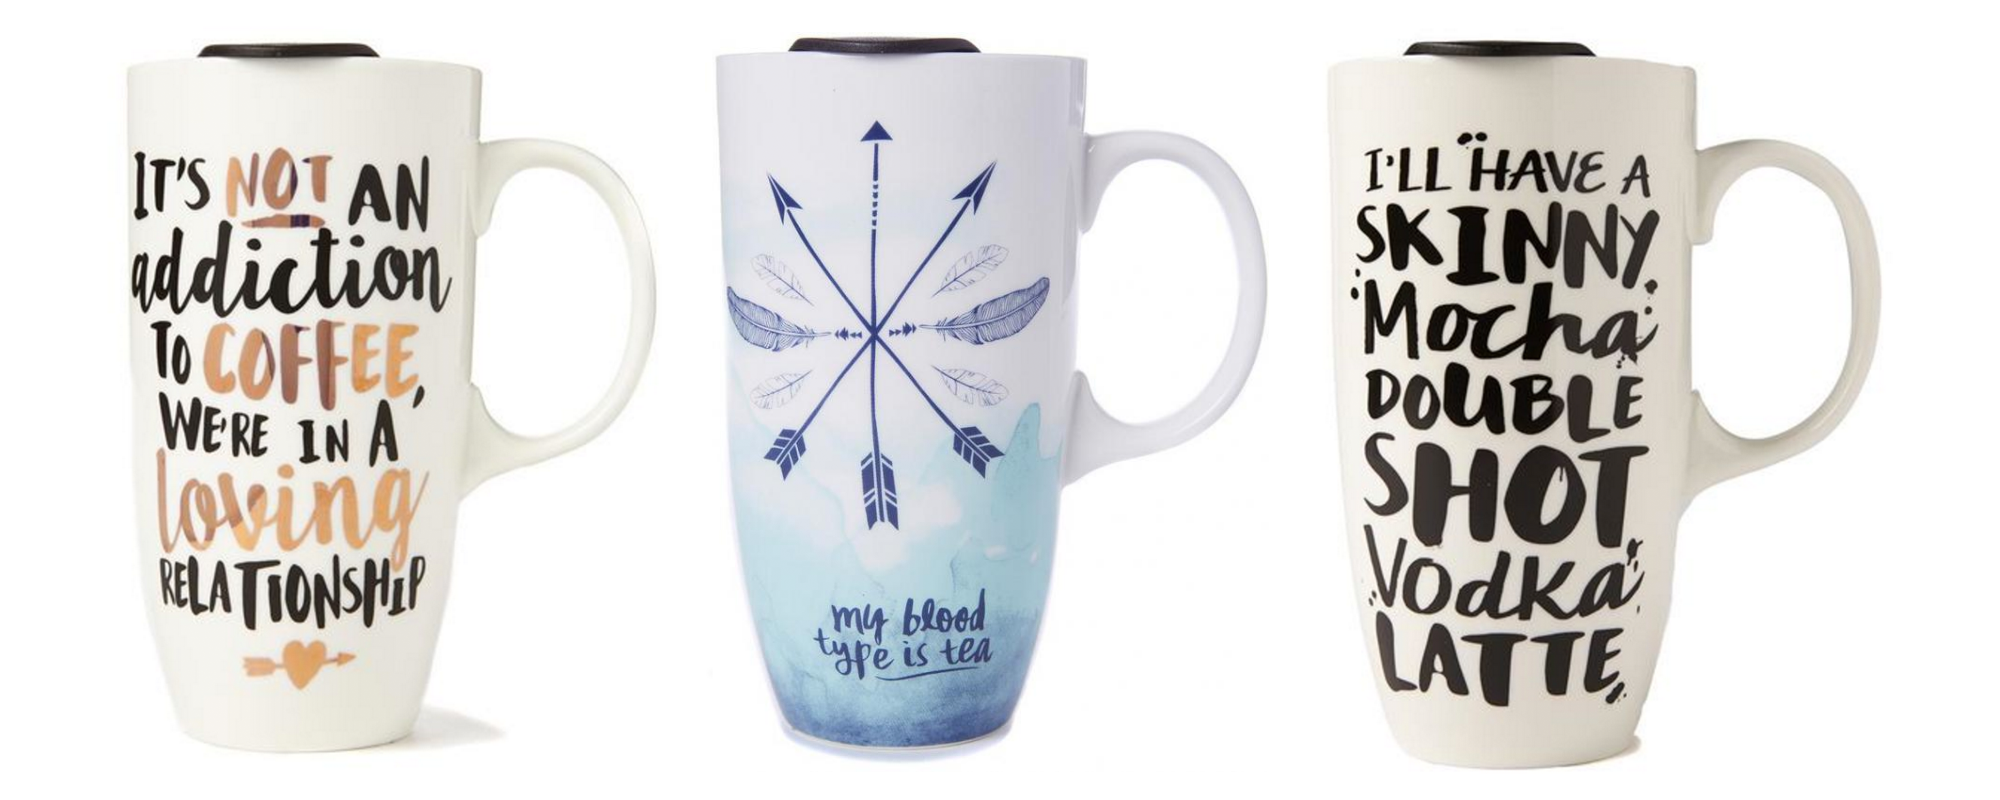 Mix Brush and Mix Fickle on Typo's Carrier Mugs